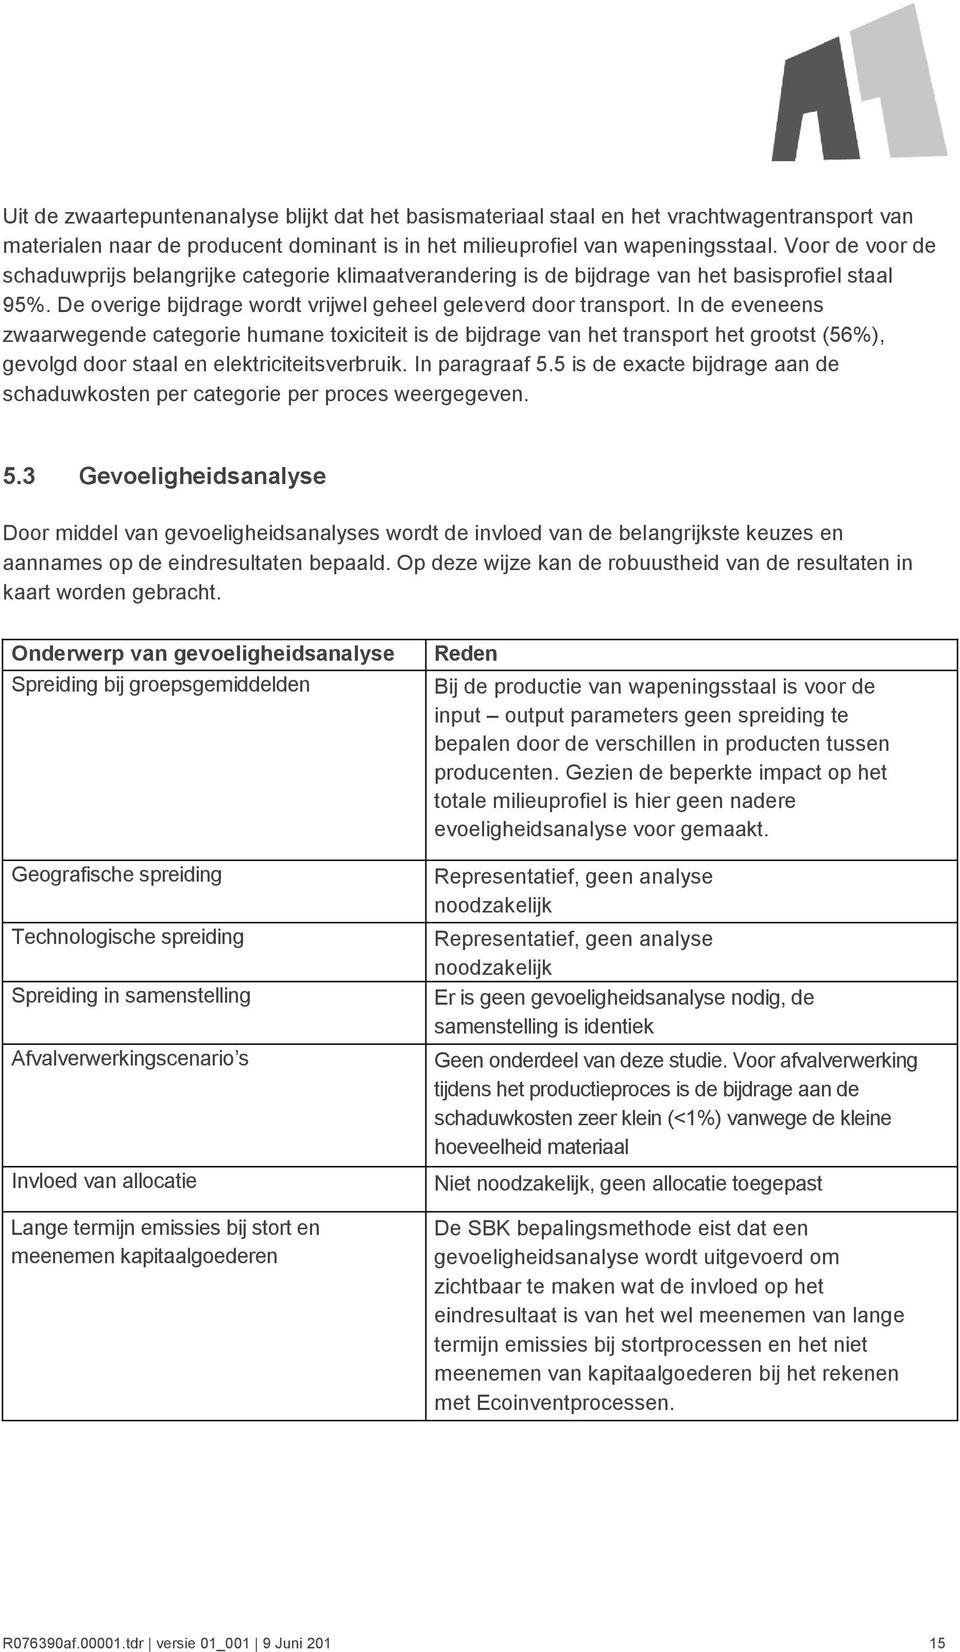 In de eveneens zwaarwegende categorie humane toxiciteit is de bijdrage van het transport het grootst (56%), gevolgd door staal en elektriciteitsverbruik. In paragraaf 5.